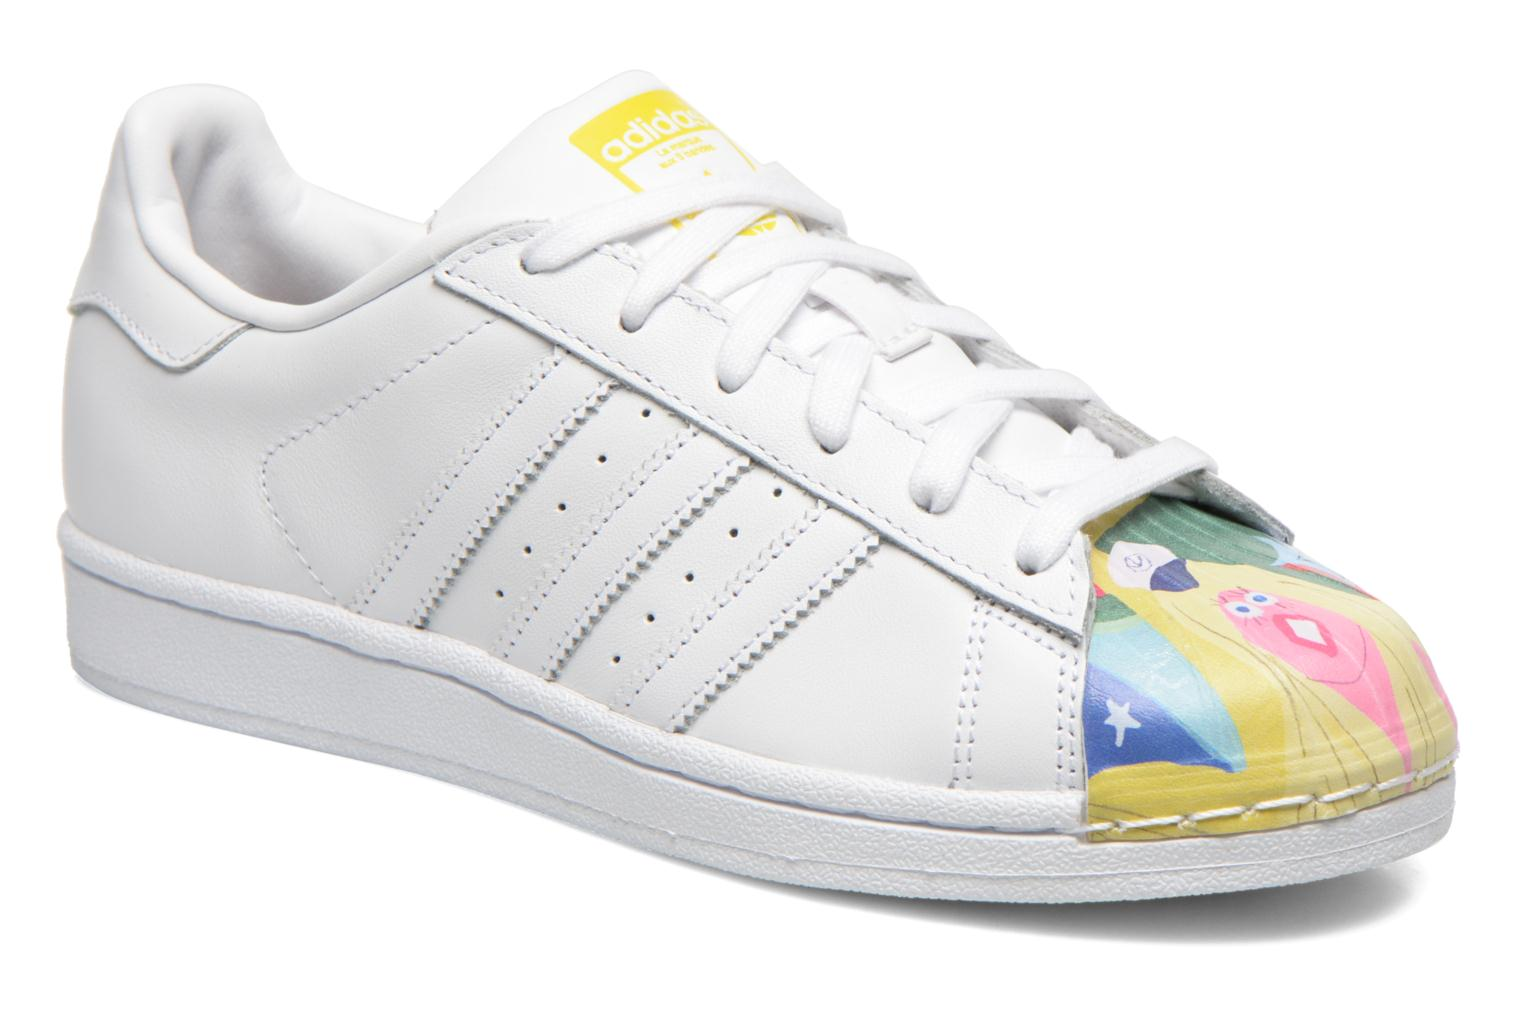 buy online 64d58 9d9ce superstar adidas femme pharrell williams 320